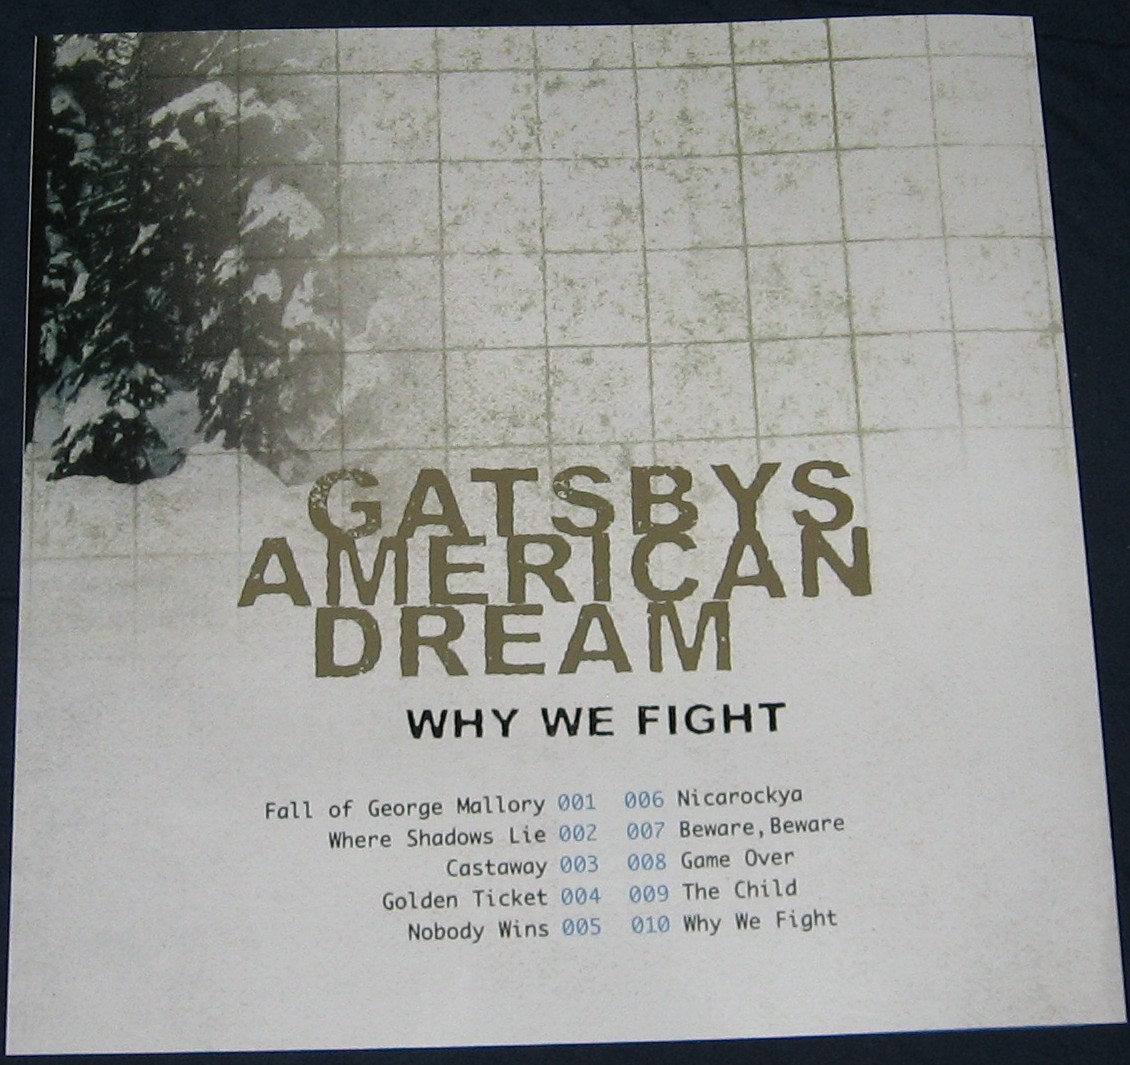 Gatsbys American Dream Why We Fight Booklet Back Cover